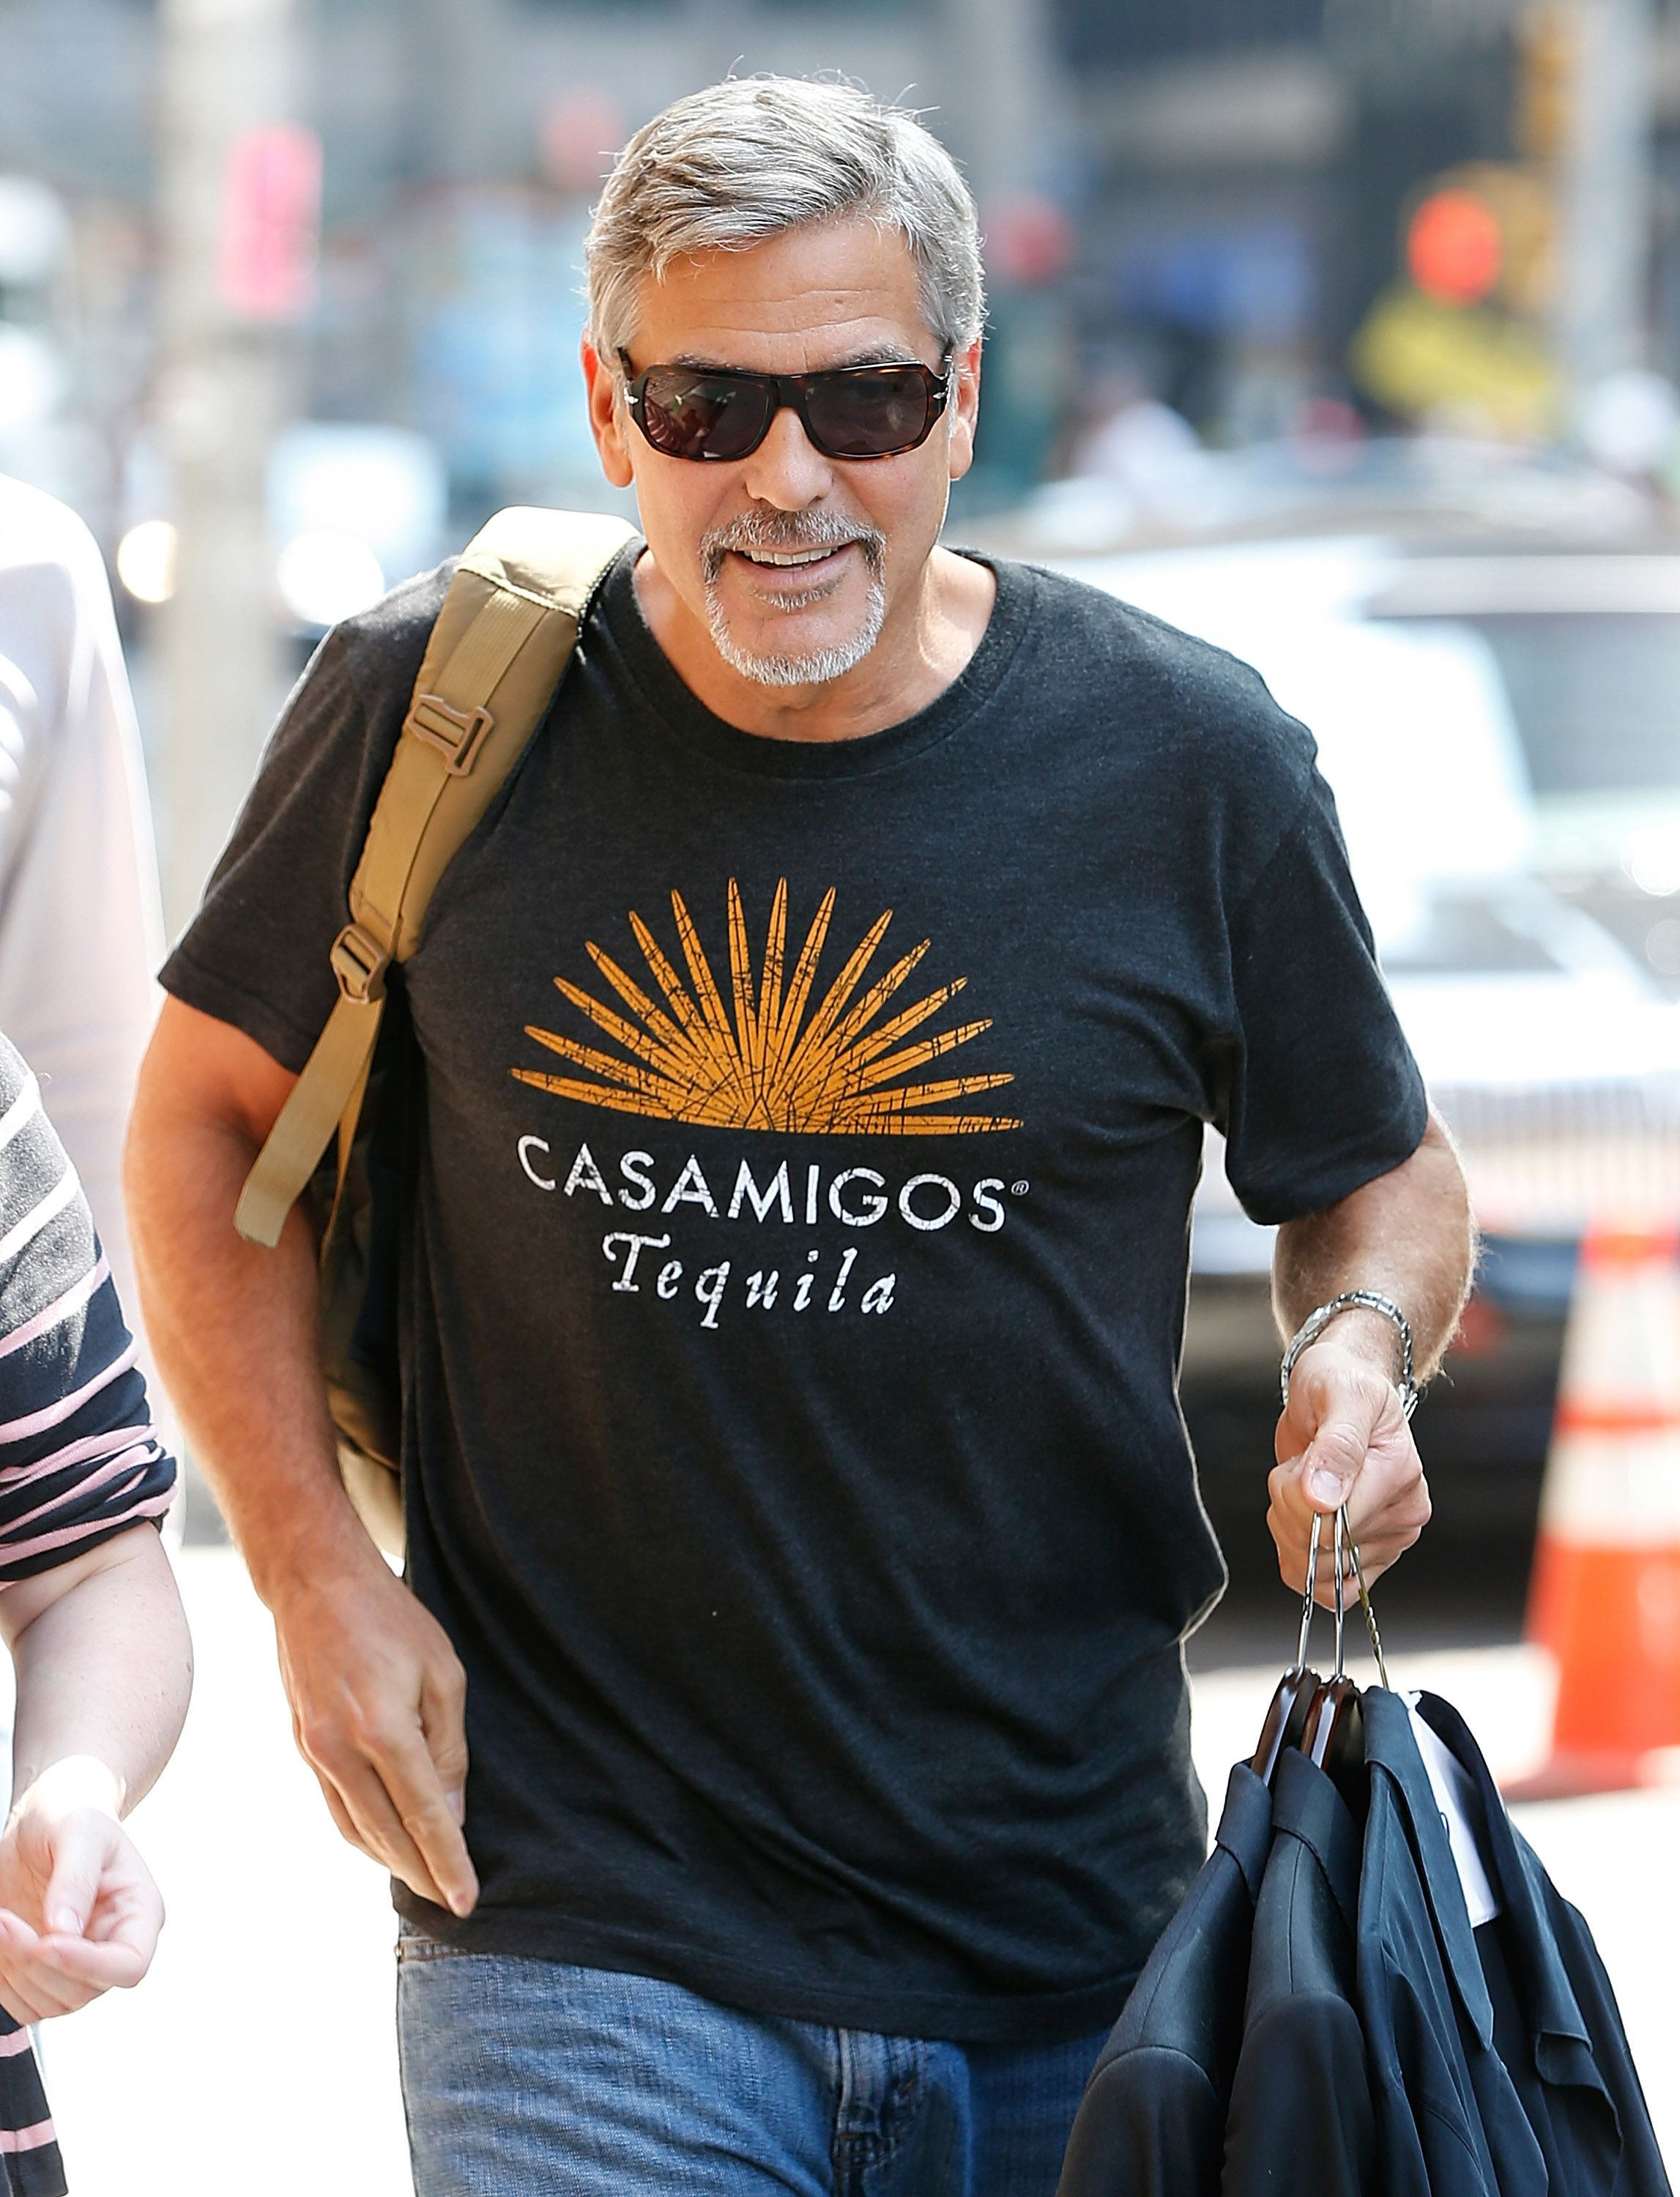 NEW YORK, NY - SEPTEMBER 08:  George Clooney attends the first taping of 'The Late Show With Stephen Colbert' on September 8, 2015 in New York City.  (Photo by John Lamparski/Getty Images)